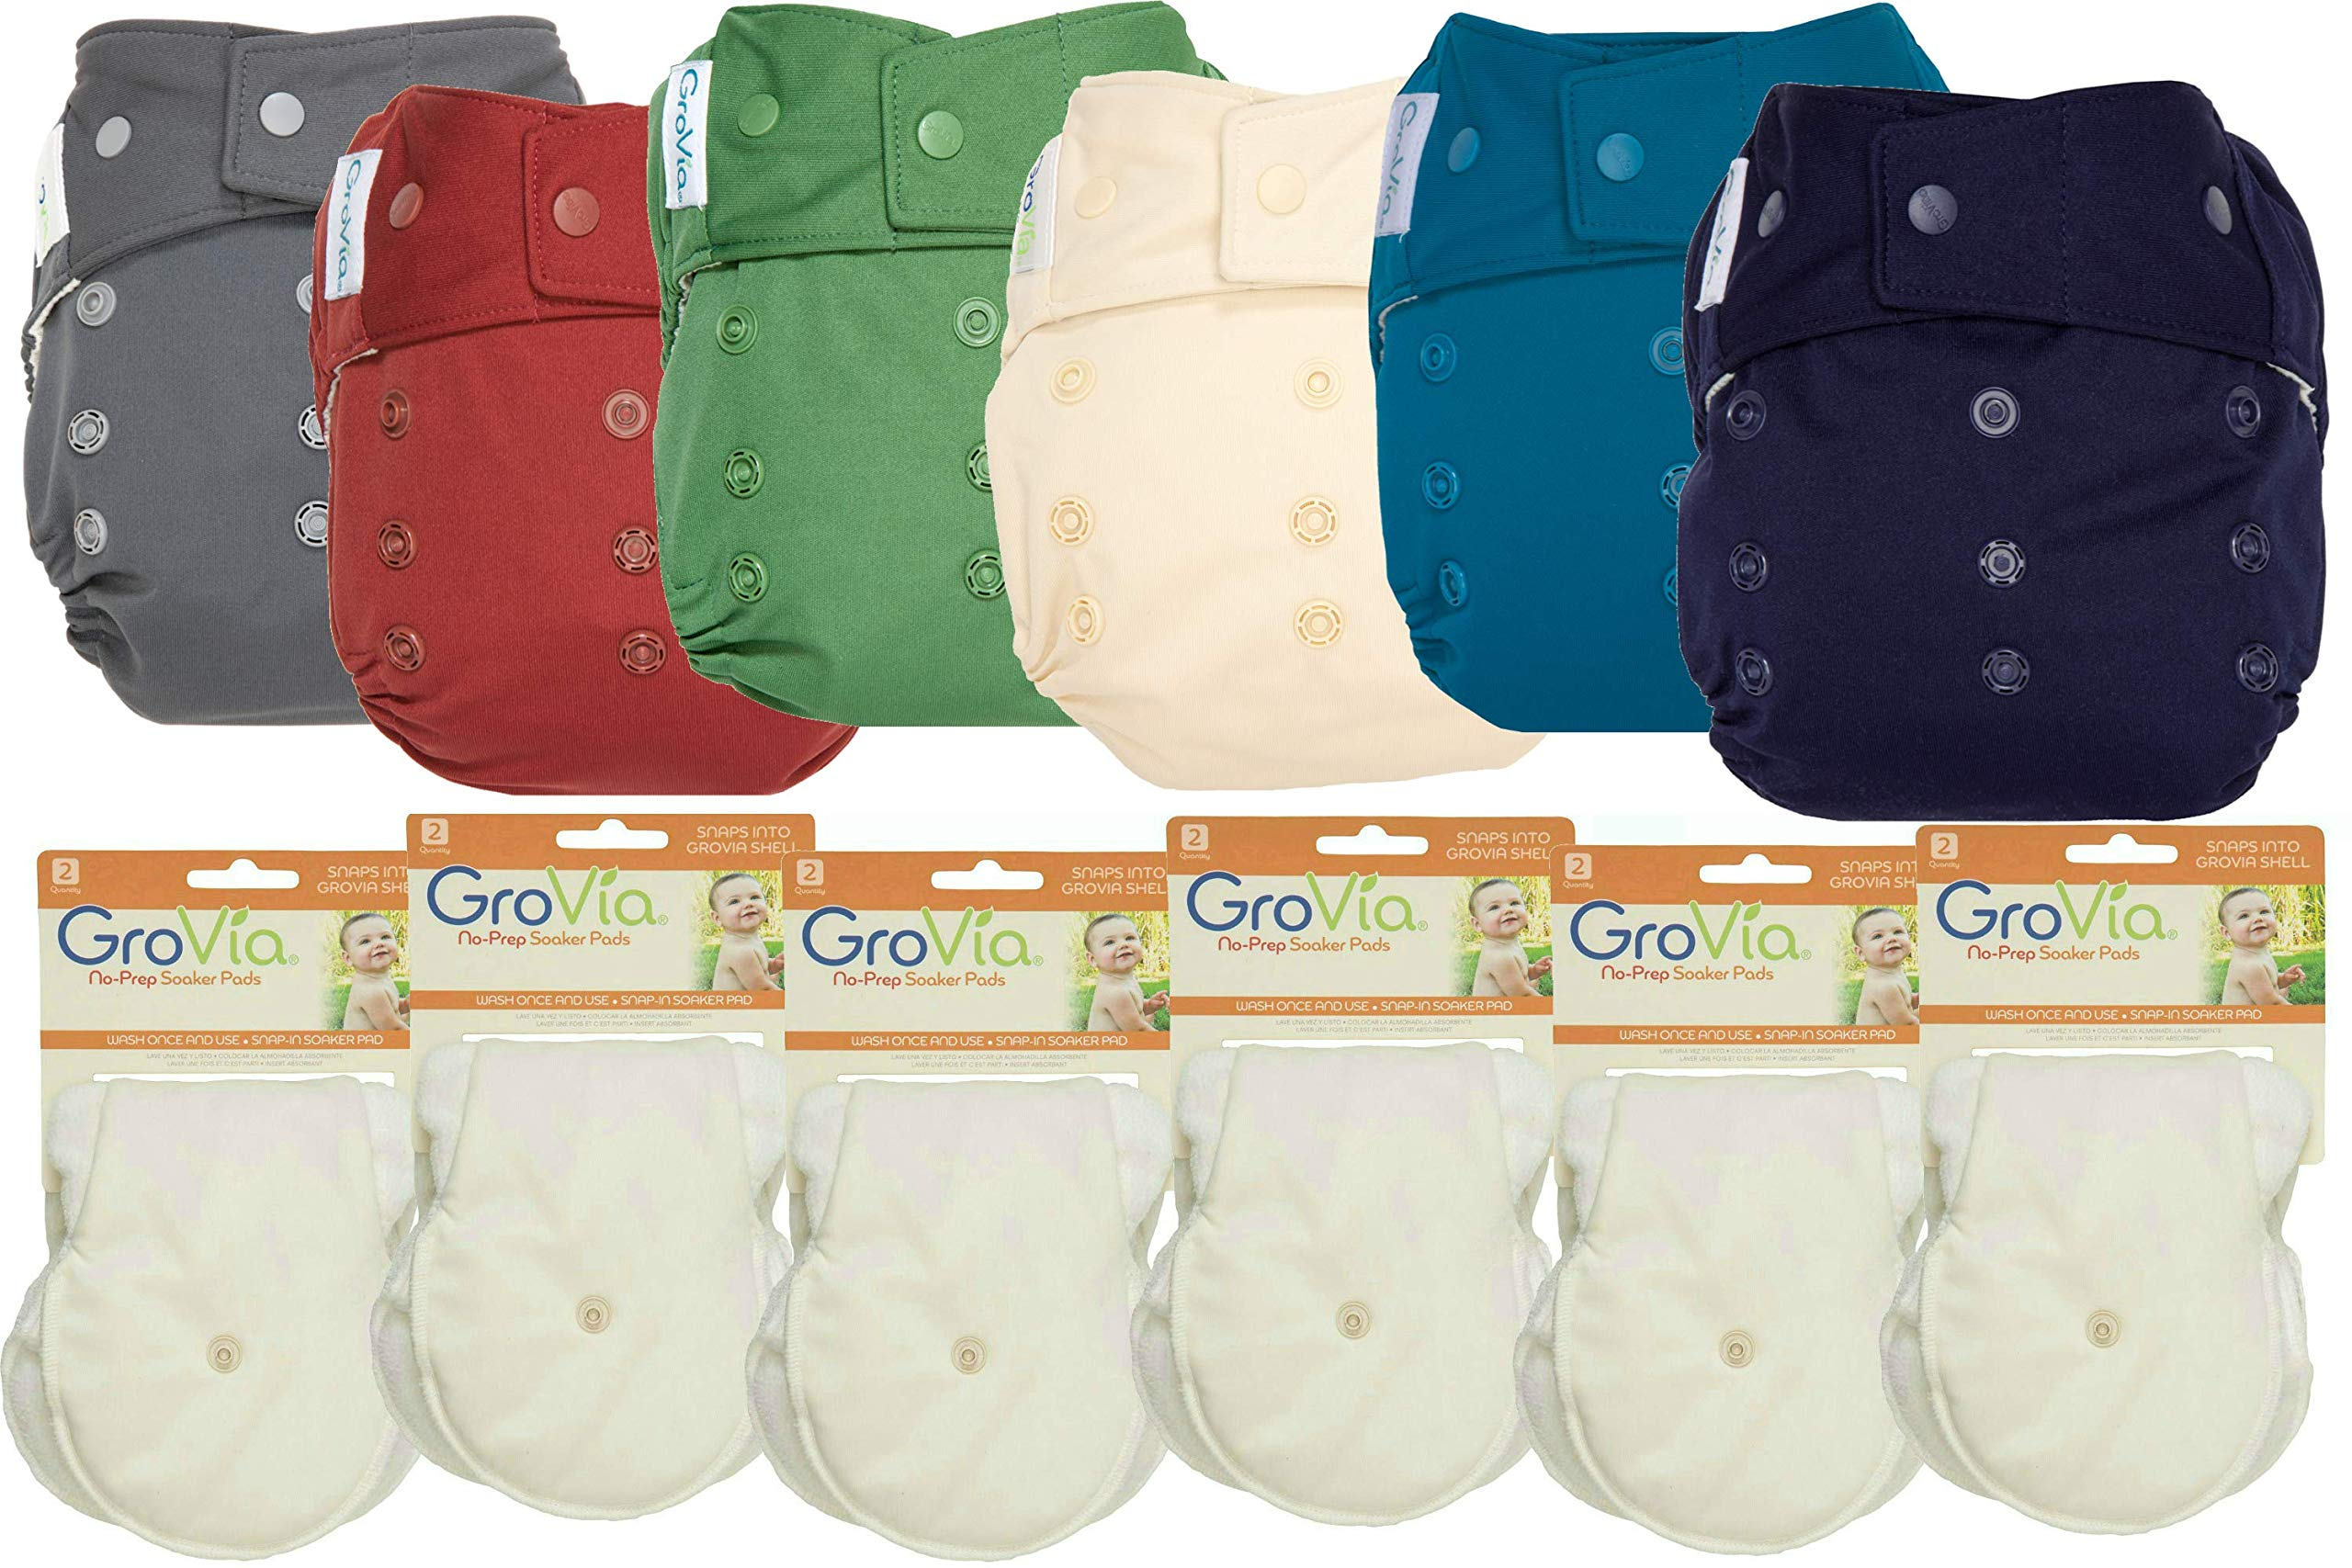 GroVia Hybrid Part Time Package: 6 Shells + 12 No Prep Soaker Pads (Color Mix 7 - Snap)